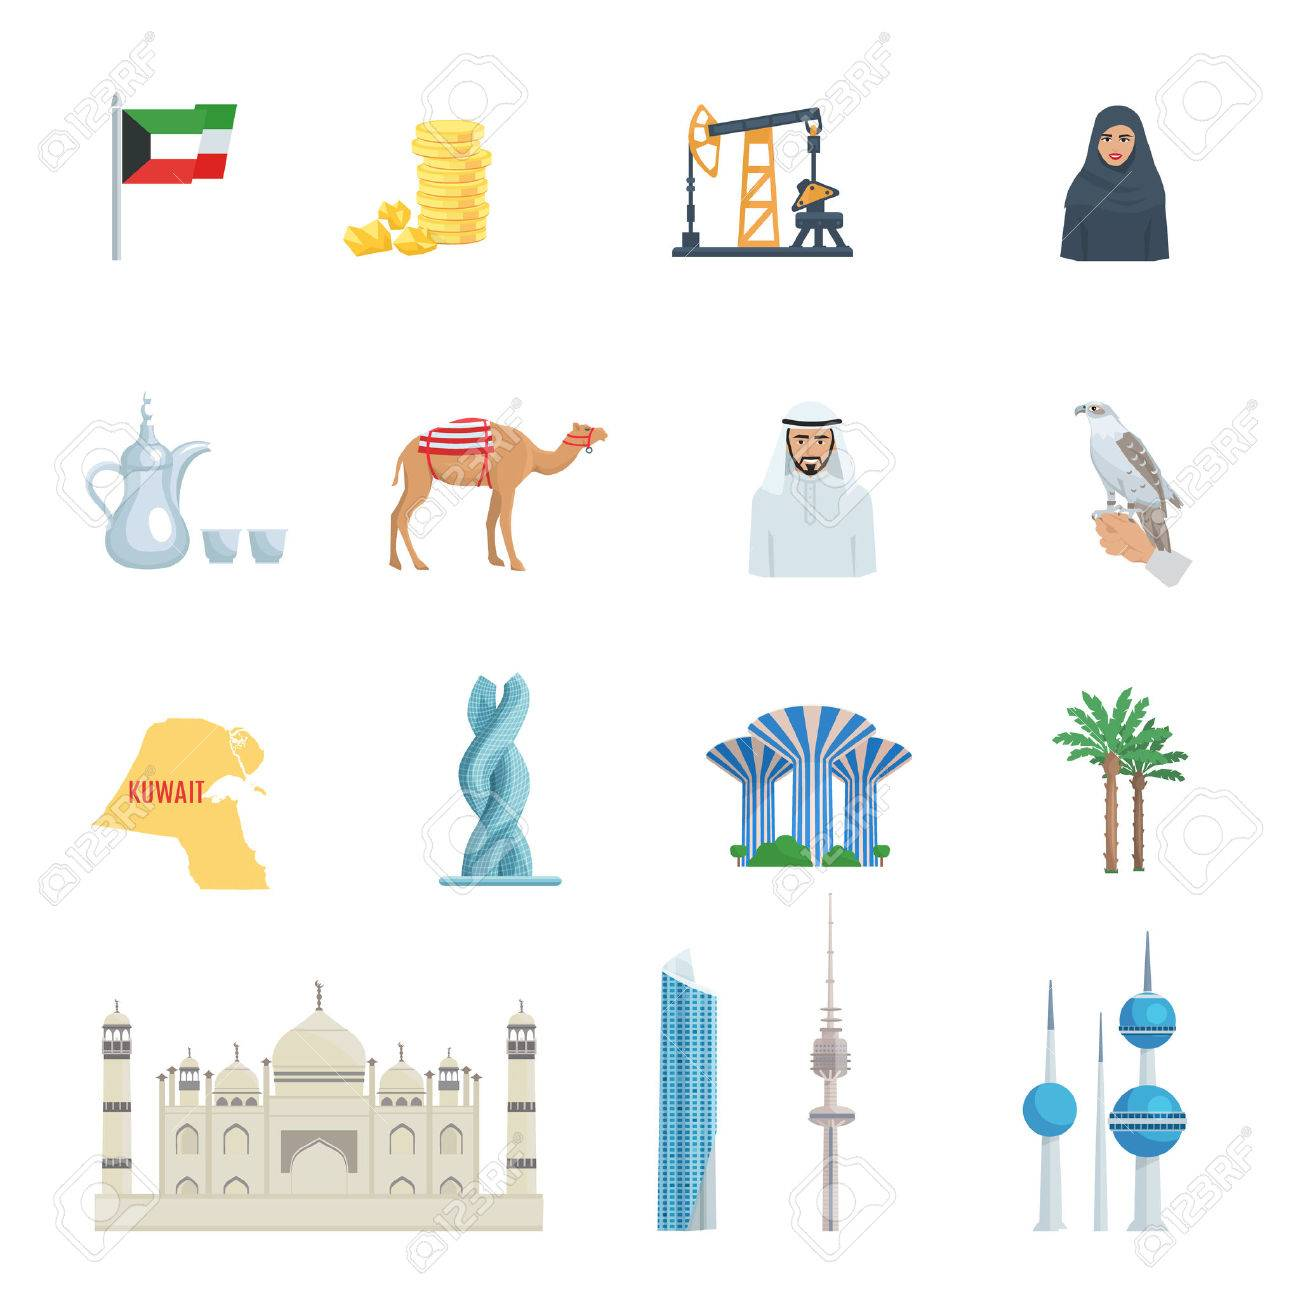 Kuwait culture flat icon set with traditional symbols costumes kuwait culture flat icon set with traditional symbols costumes buildings and animals vector illustration stock vector biocorpaavc Images